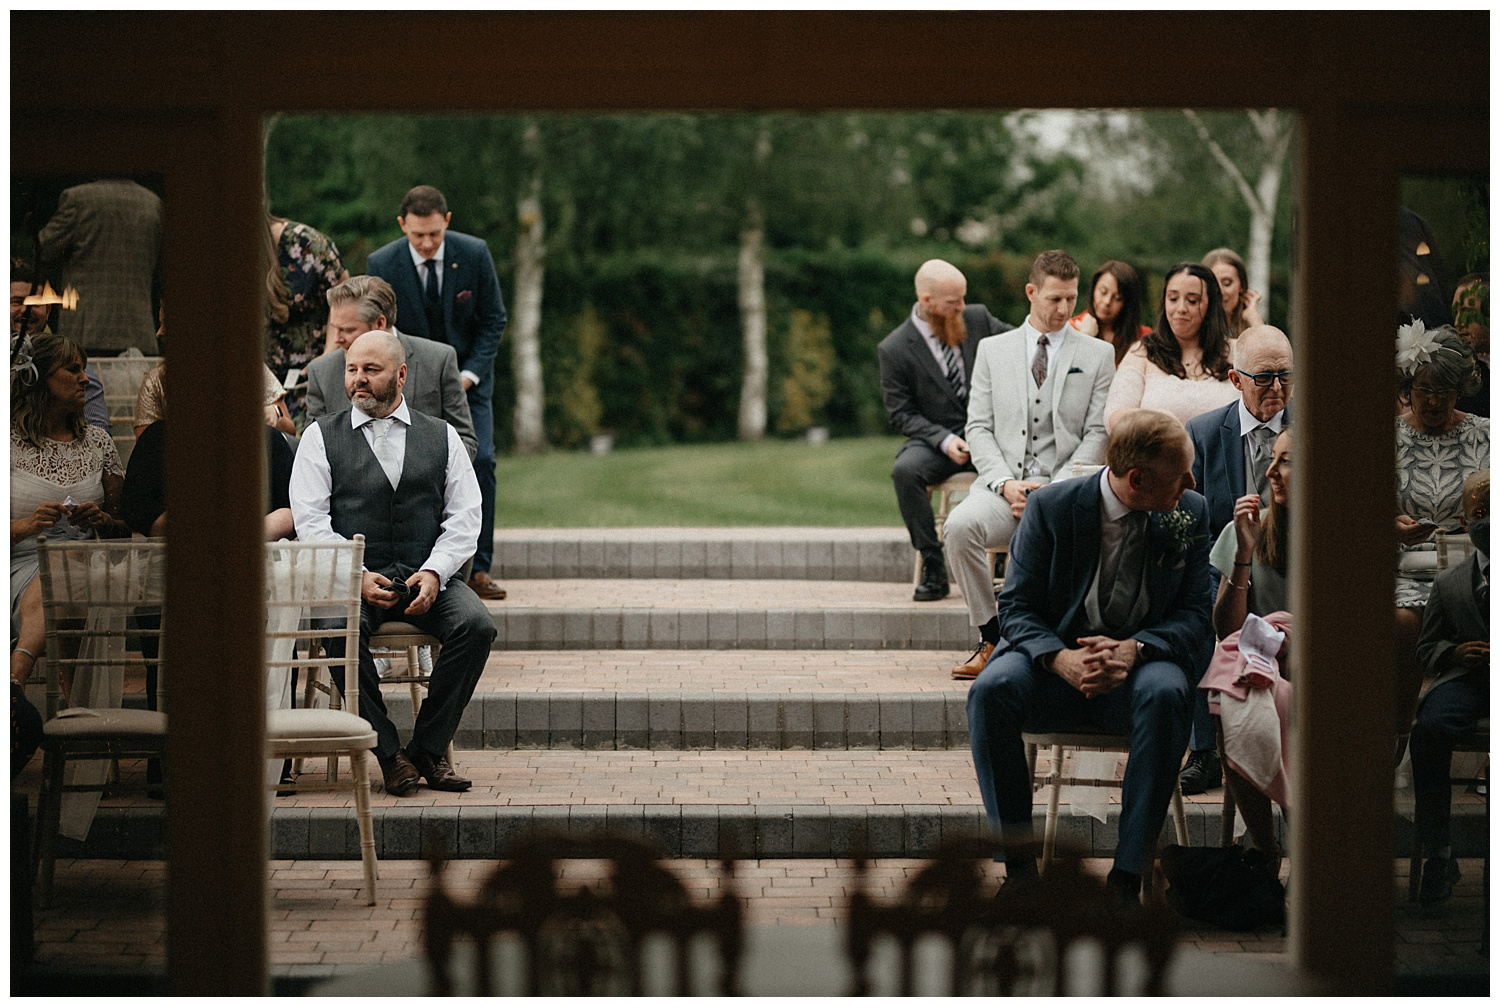 Weddings-at-Crondon-Park-the-wedding-guests-seated